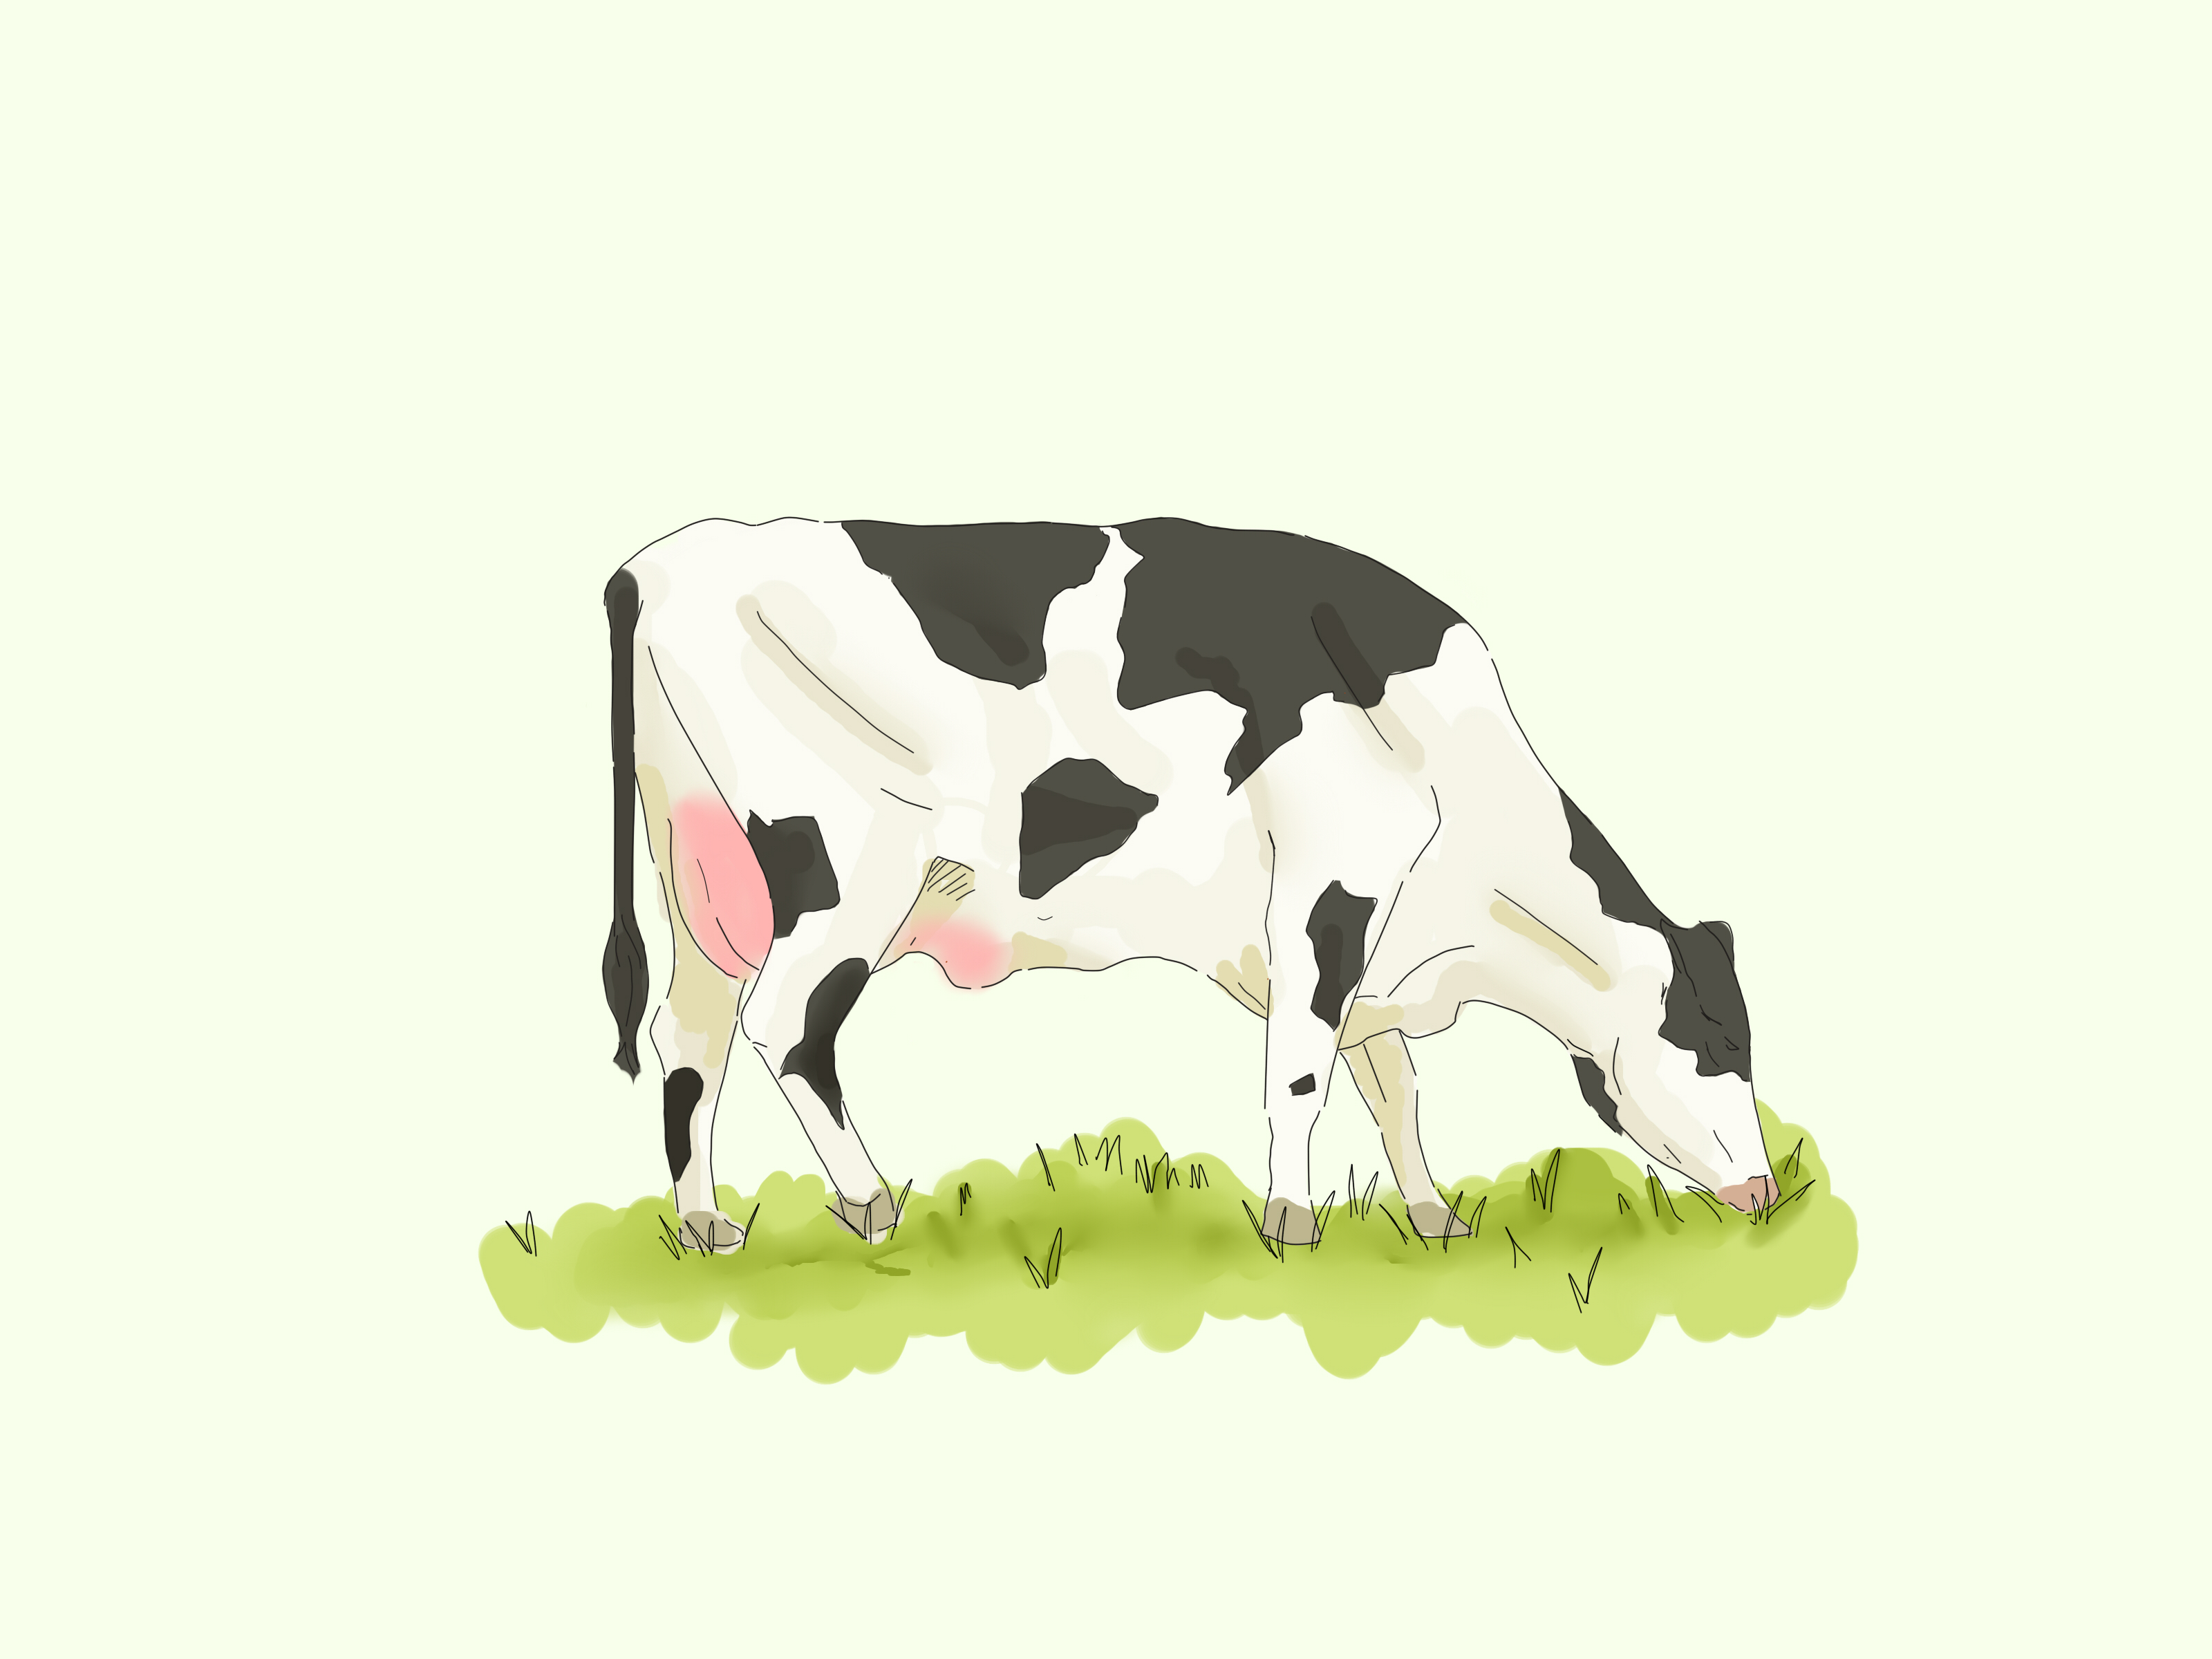 3200x2400 Characteristics That Cows Have. How To Draw A Cow Step By Step